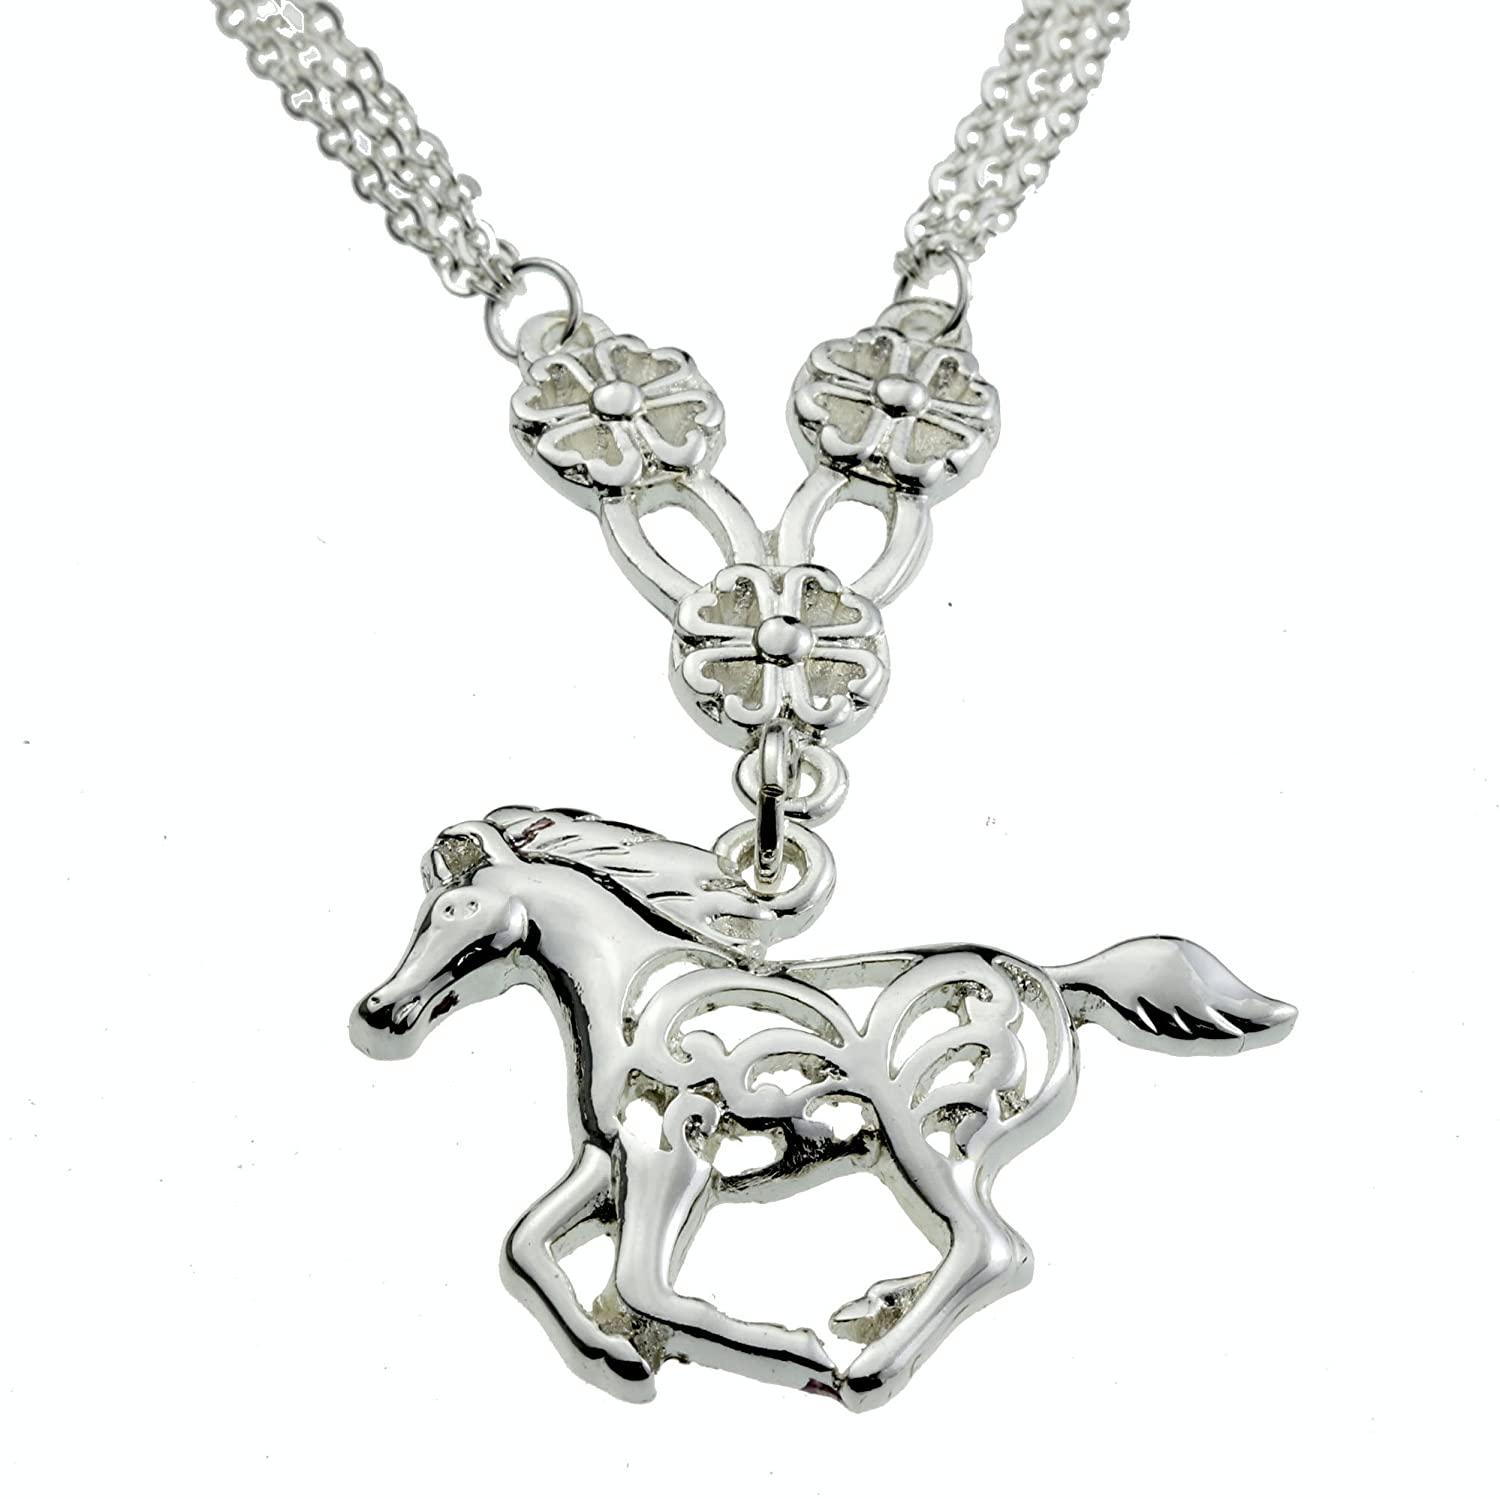 Flower Horse Silver Pendant My Little Pony Necklace Awesome Birthday Gift Jewelry for Girls Women Teen